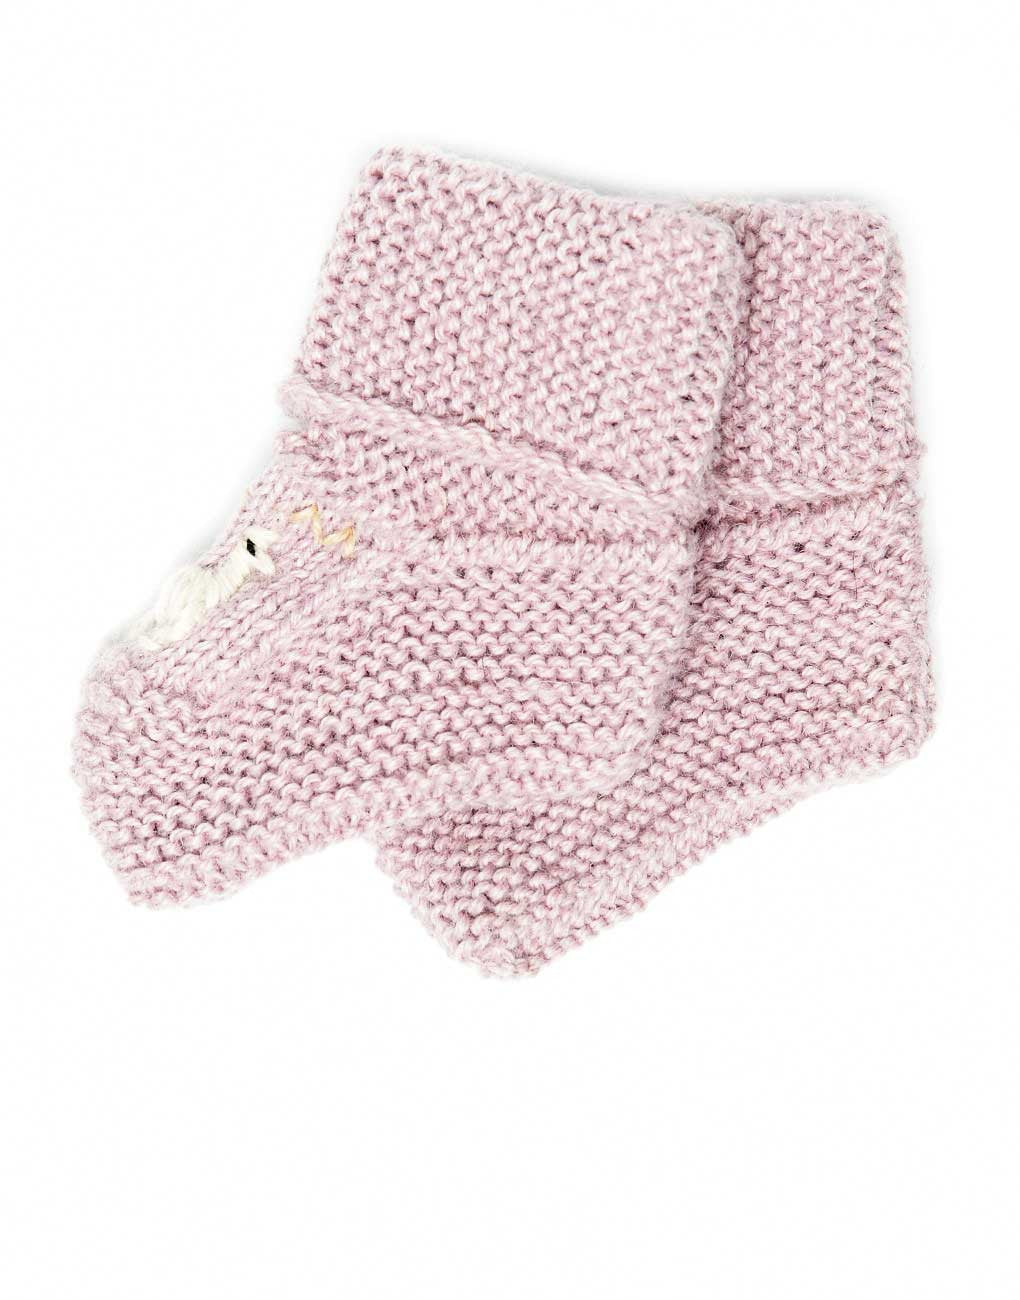 1-1.5 years lilac alpaca and wool blend baby booties choose your size: newborn 3-6 month Lavender color socks 6-12 month